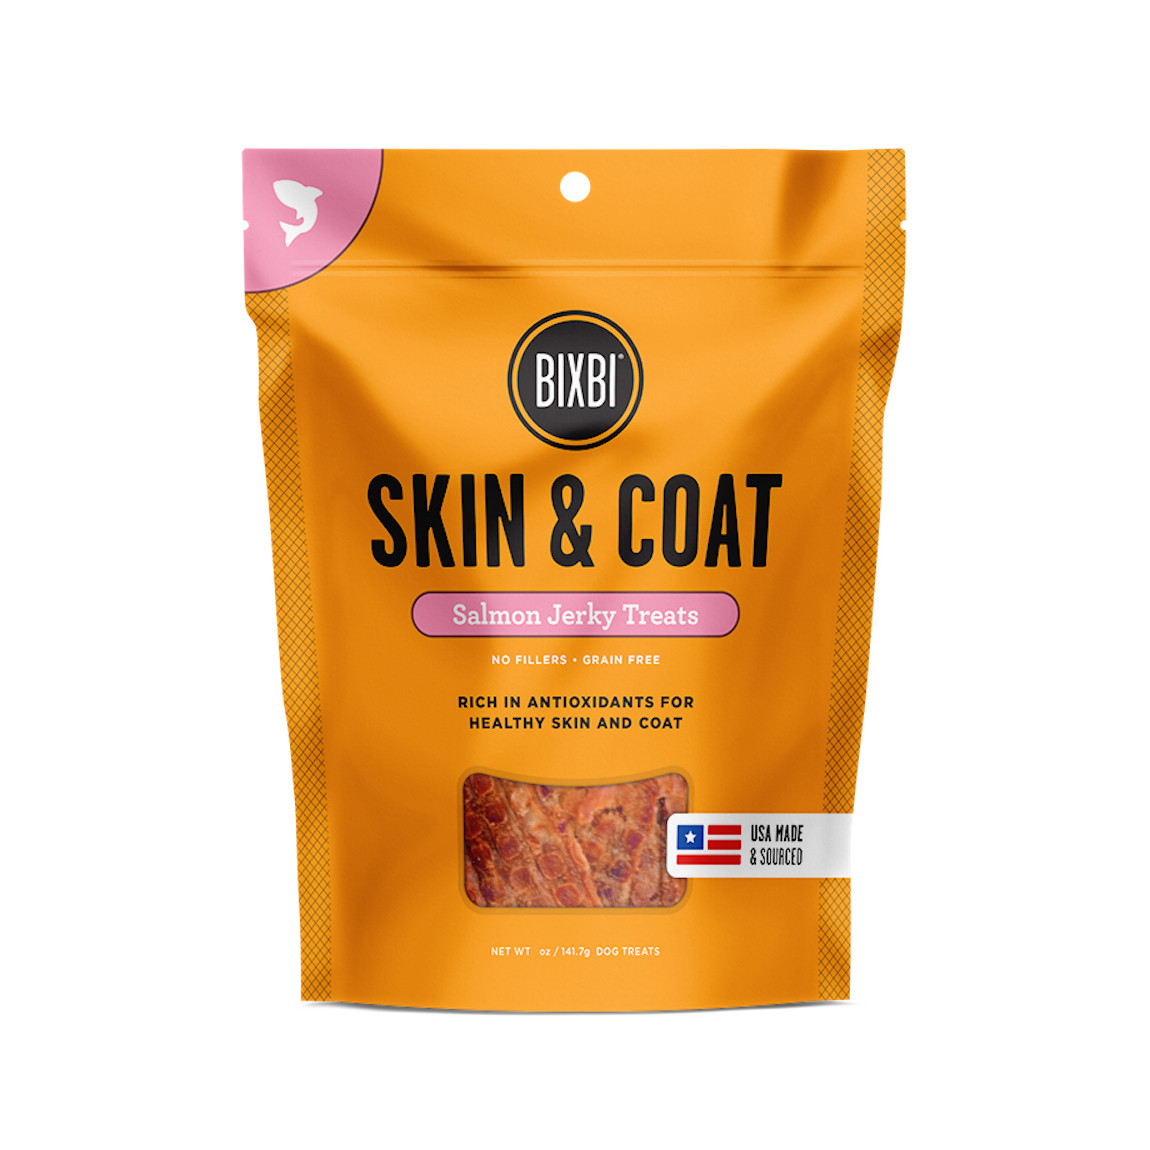 click here to shop Bixbi Skin & Coat Salmon Jerky Dog Treats